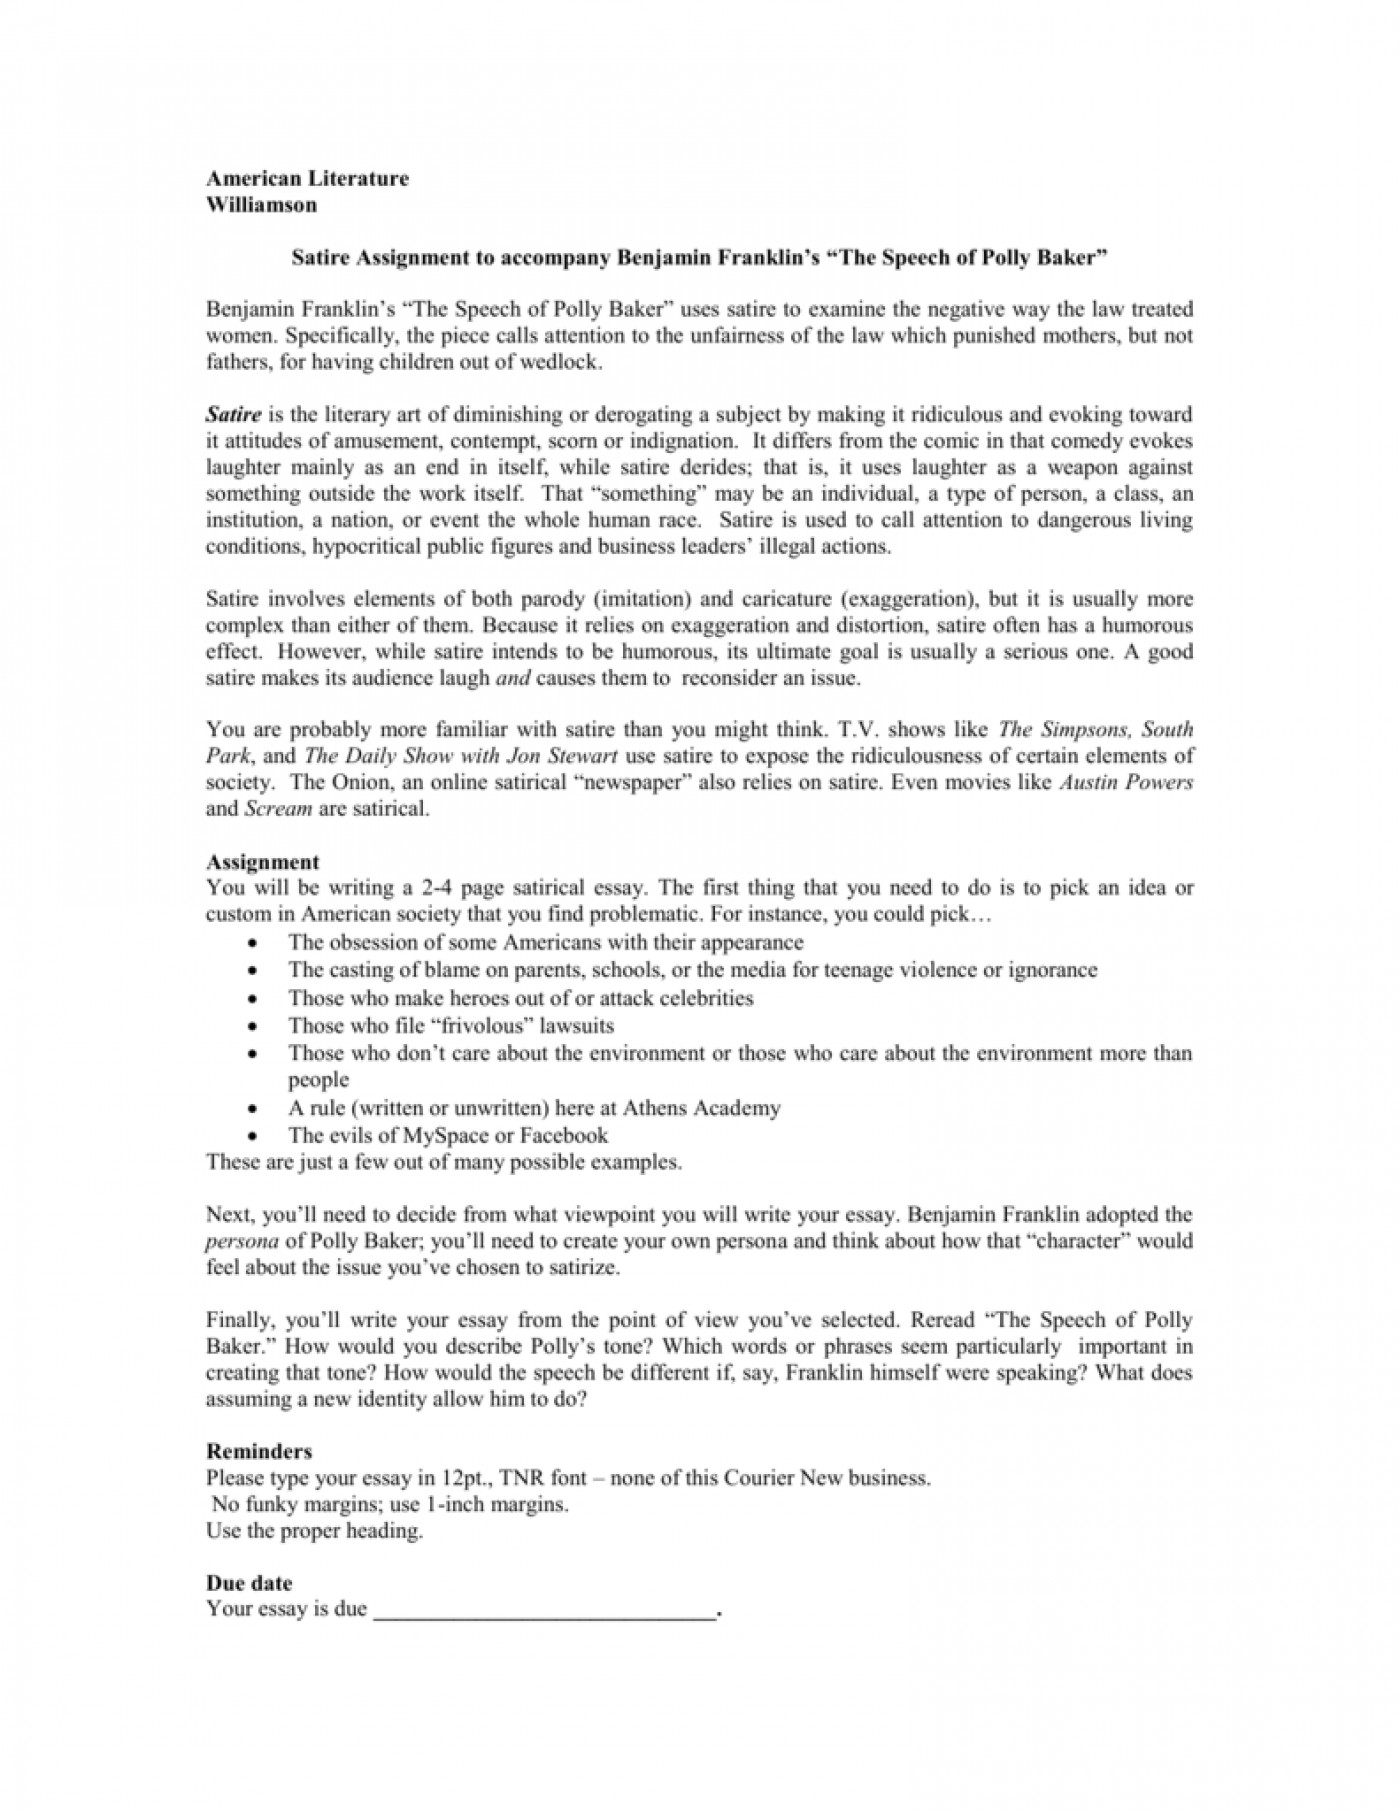 016 008005442 1 Essay Example How To Write Fascinating A Satire An Introduction For Essay-example On Obesity 1400